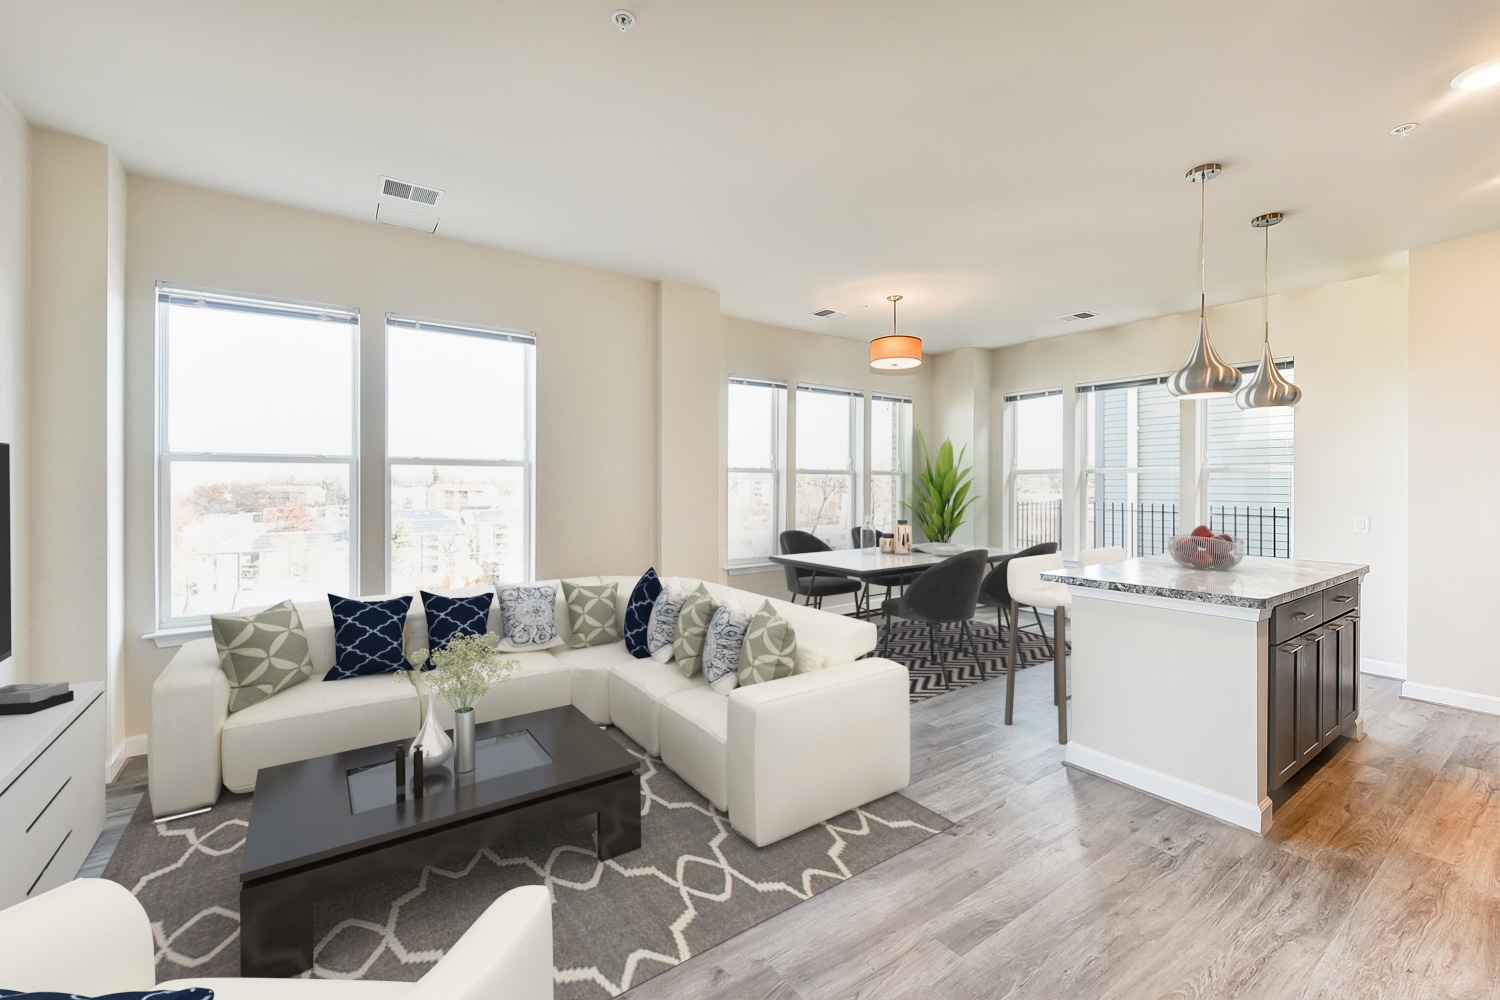 City View Apartments In Washington DC | WC Smith